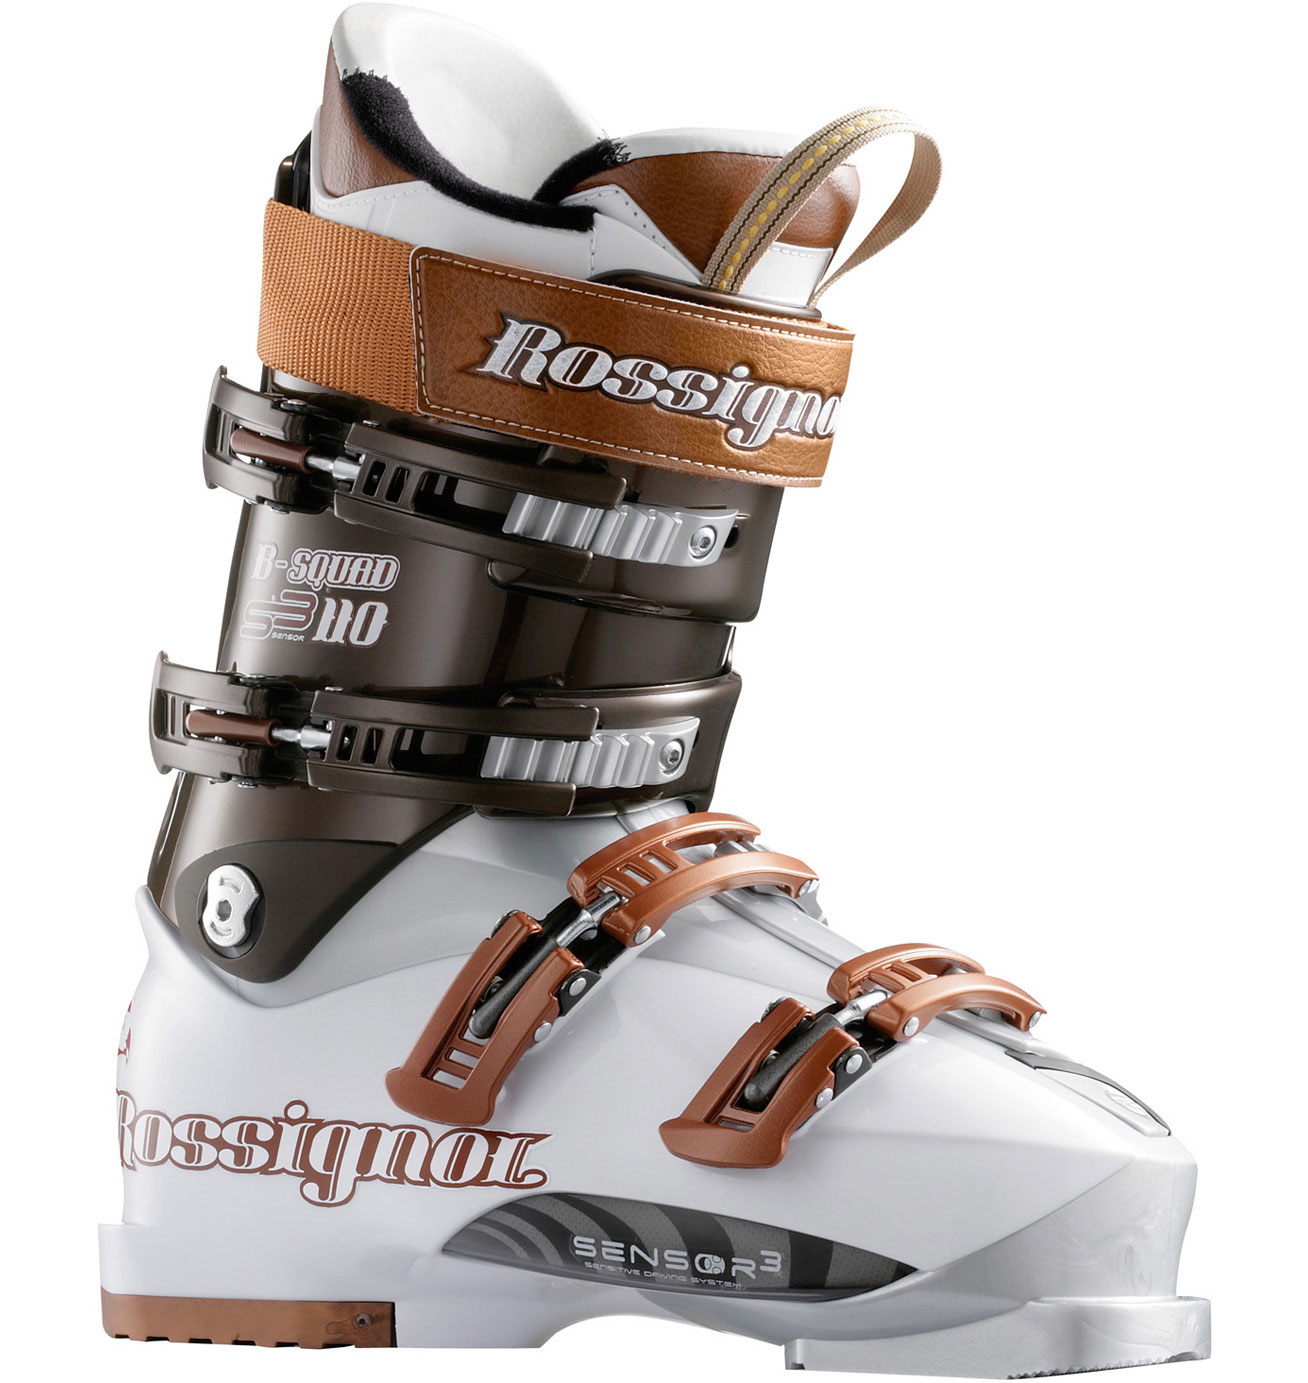 Ski Big mountain, hard-charging boot with maximum power and sensitivity for professional freeride athletes. Vibram soles for extra grip on those rocky approaches. Works in alpine or AT bindings.Key Features of the Rossignol B-Squad Pro 120 Ski Boots: Flex index: 120 Last: 98mm Spoiler: Removable spoiler Power Strap: 360degrees 40mm Buckles: 4 Milled Aluminum Micro Buckles Catches: 2 adjustable Foot Board: Visco Rubber Liner: Pro Fit - Thermo Moldable - $349.95